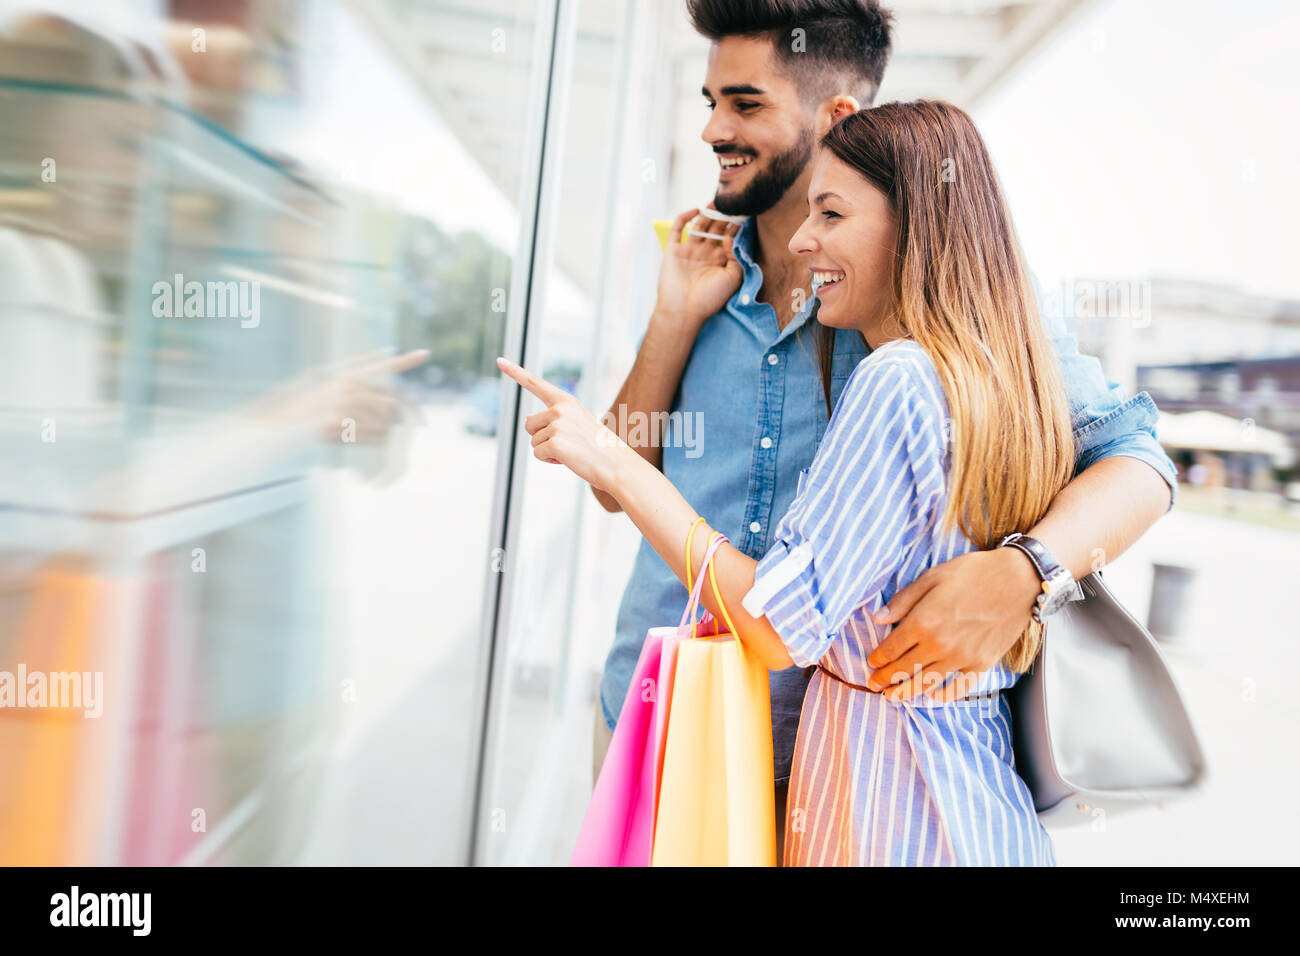 Happy attractive loving couple enjoy shopping together - Stock Image